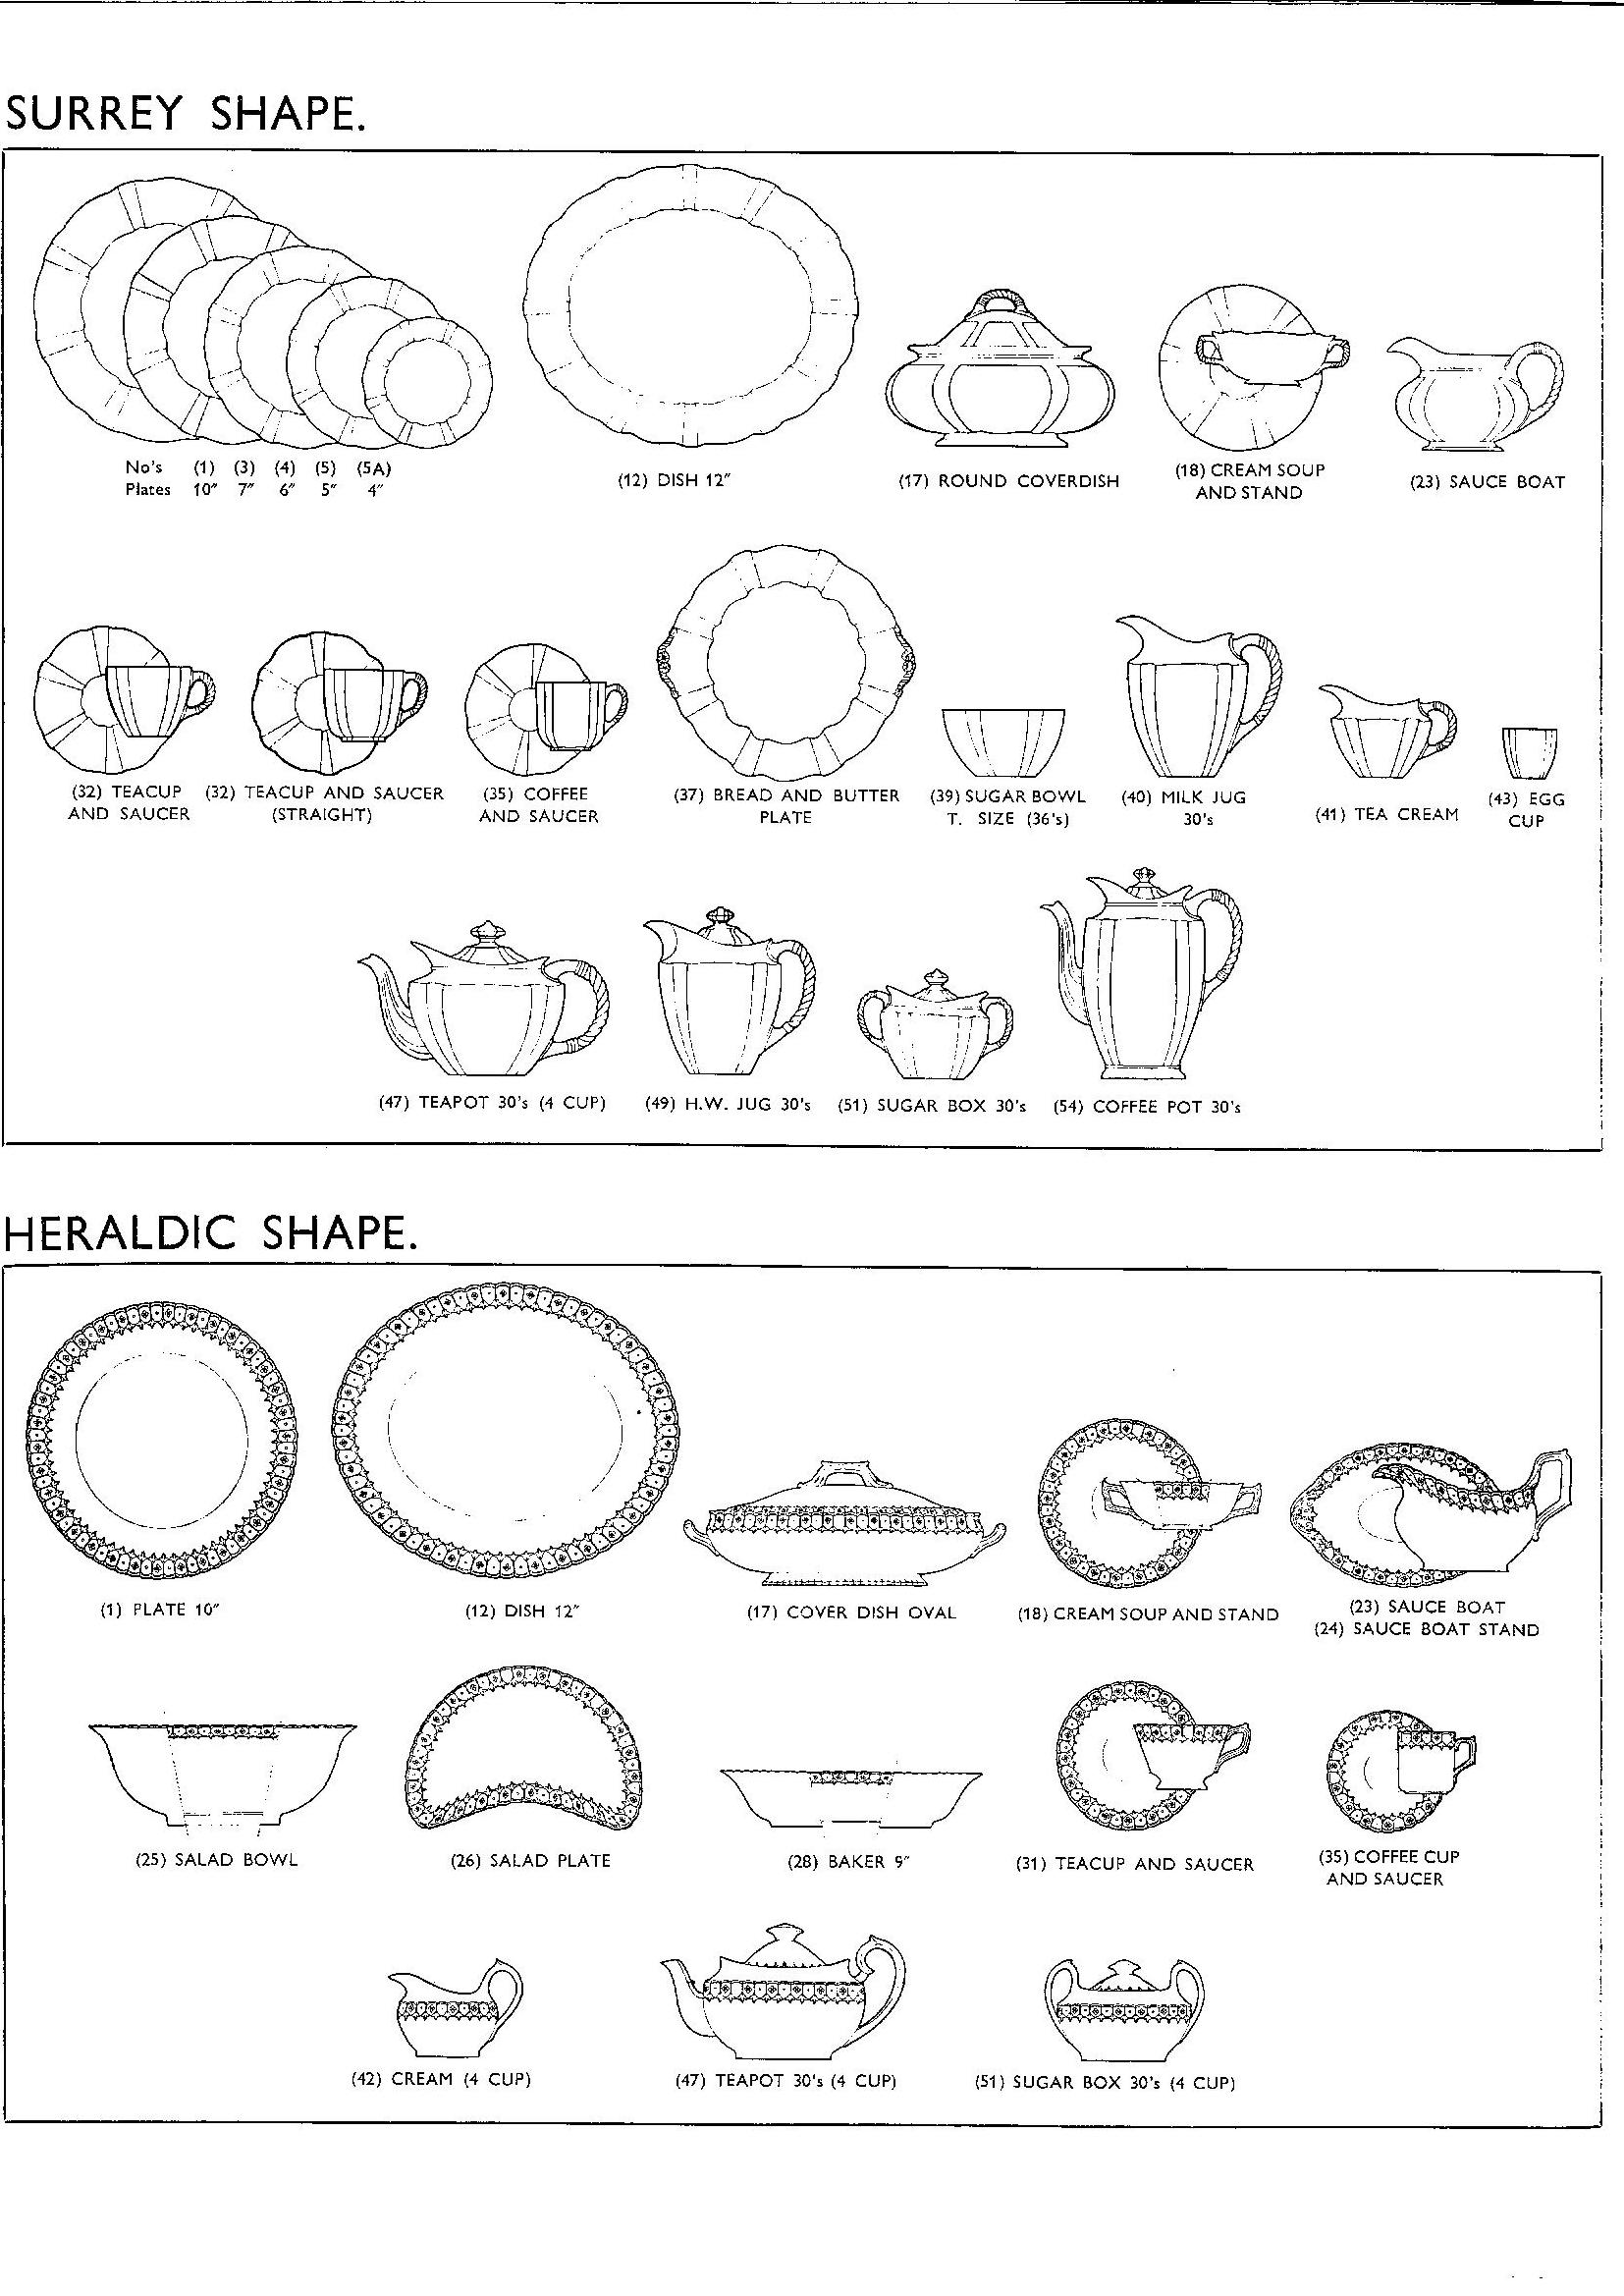 royal-crown-derby-outline-sketches-of-shapes-1955-page-2